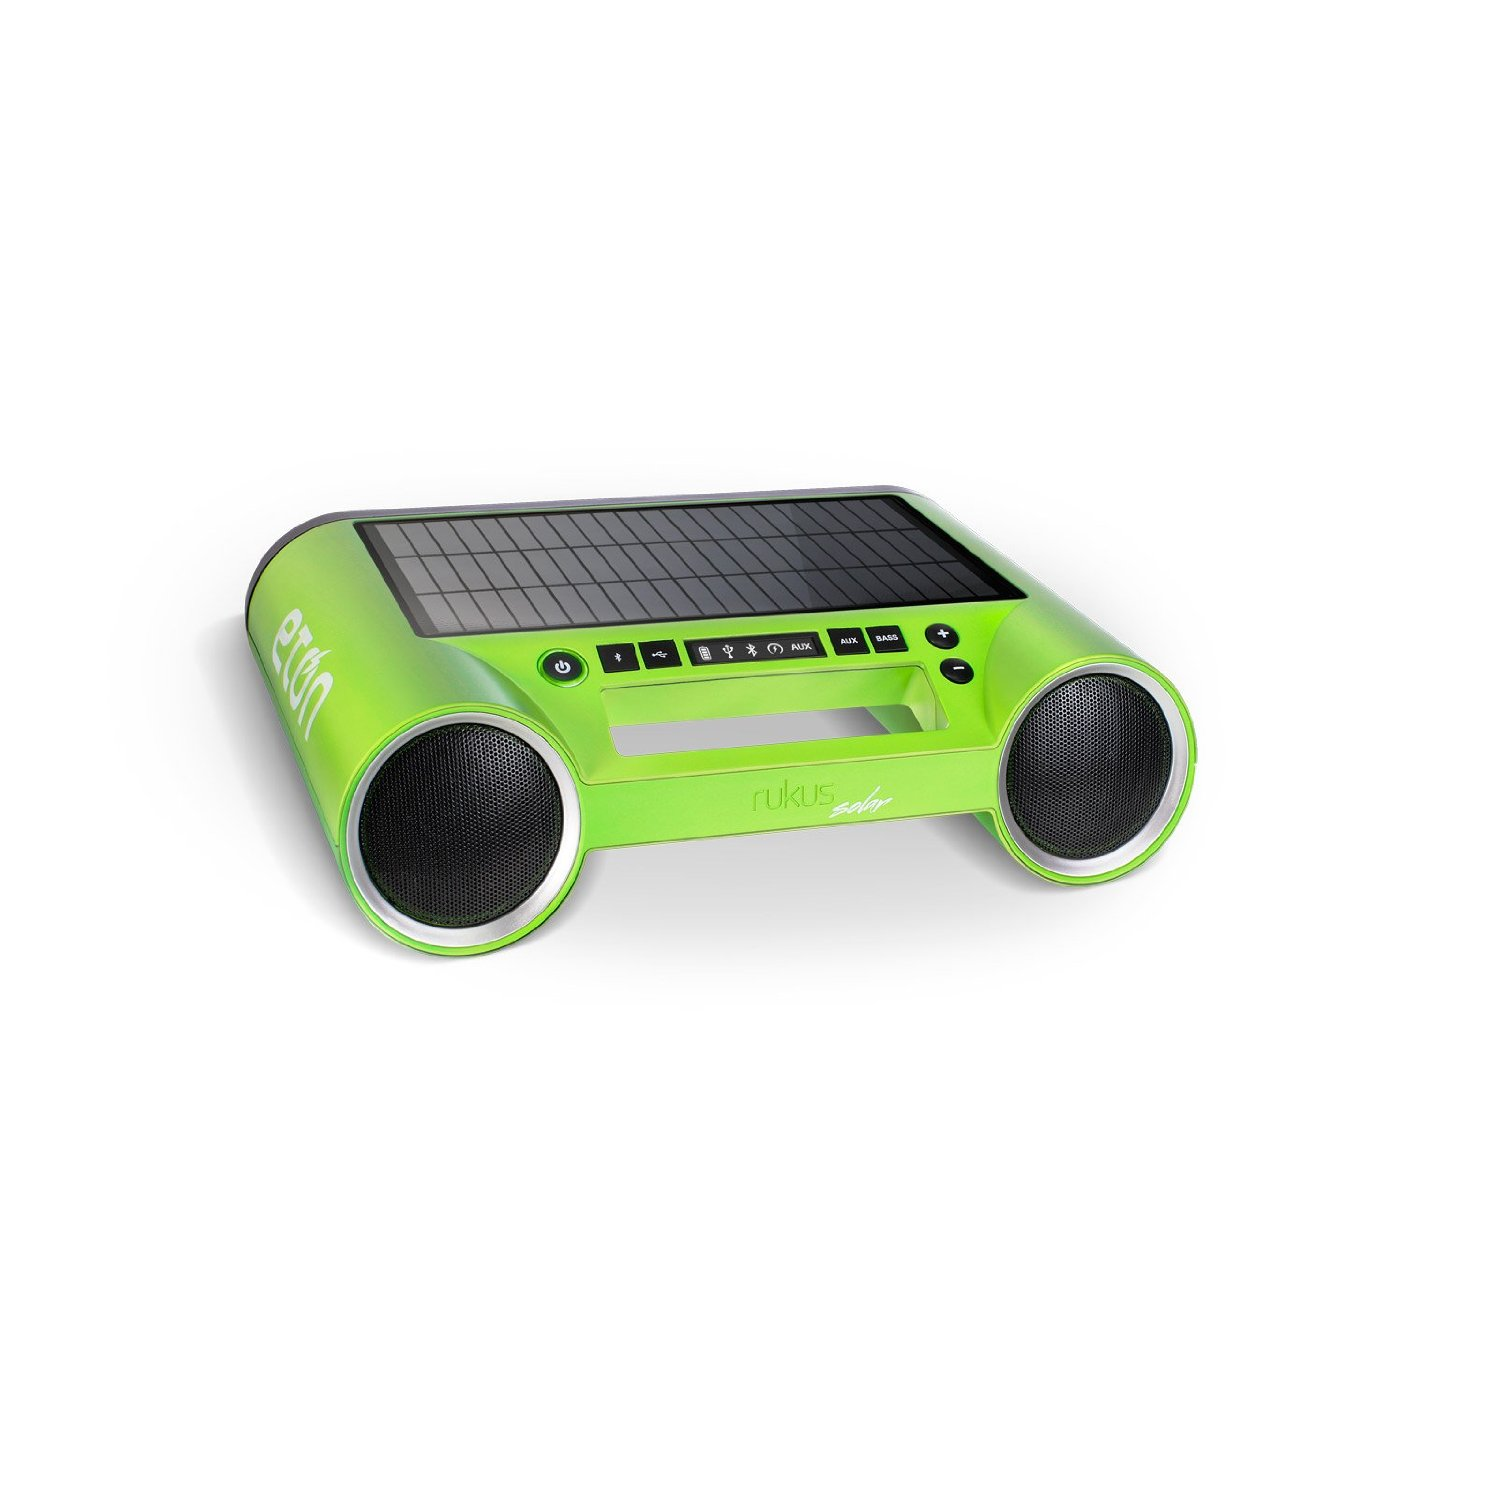 Speakers Outdoor Gear iPhone Gear Green Tech Audio Visual Gear